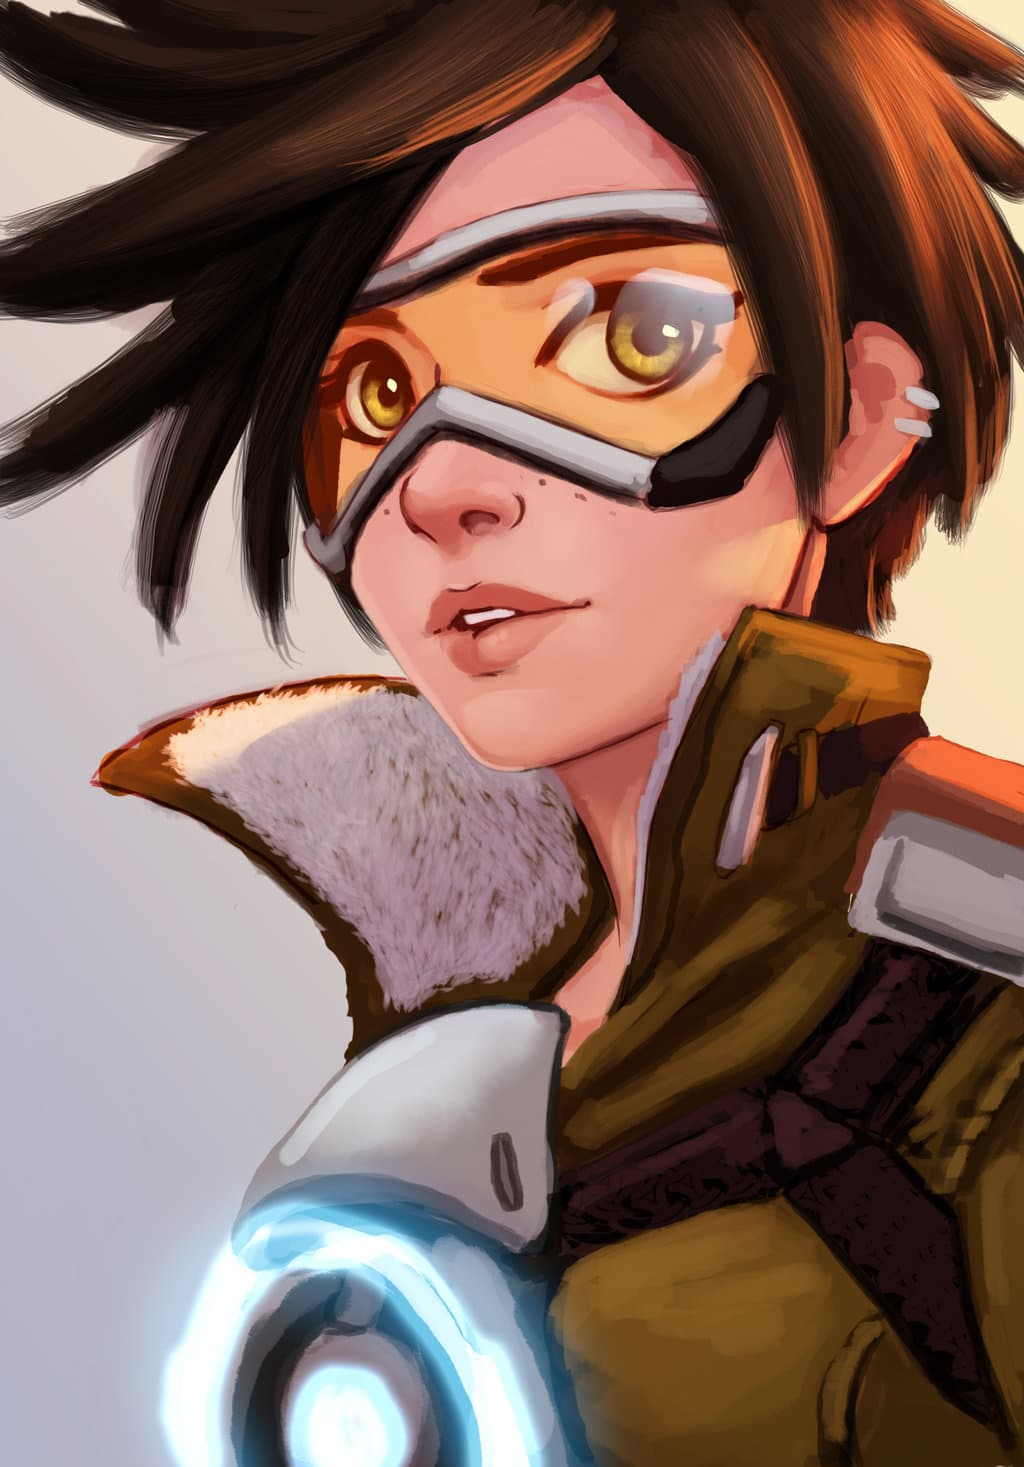 Overwatch mobile clipart clip art Overwatch Tracer Wallpaper For Mobile Phones clip art